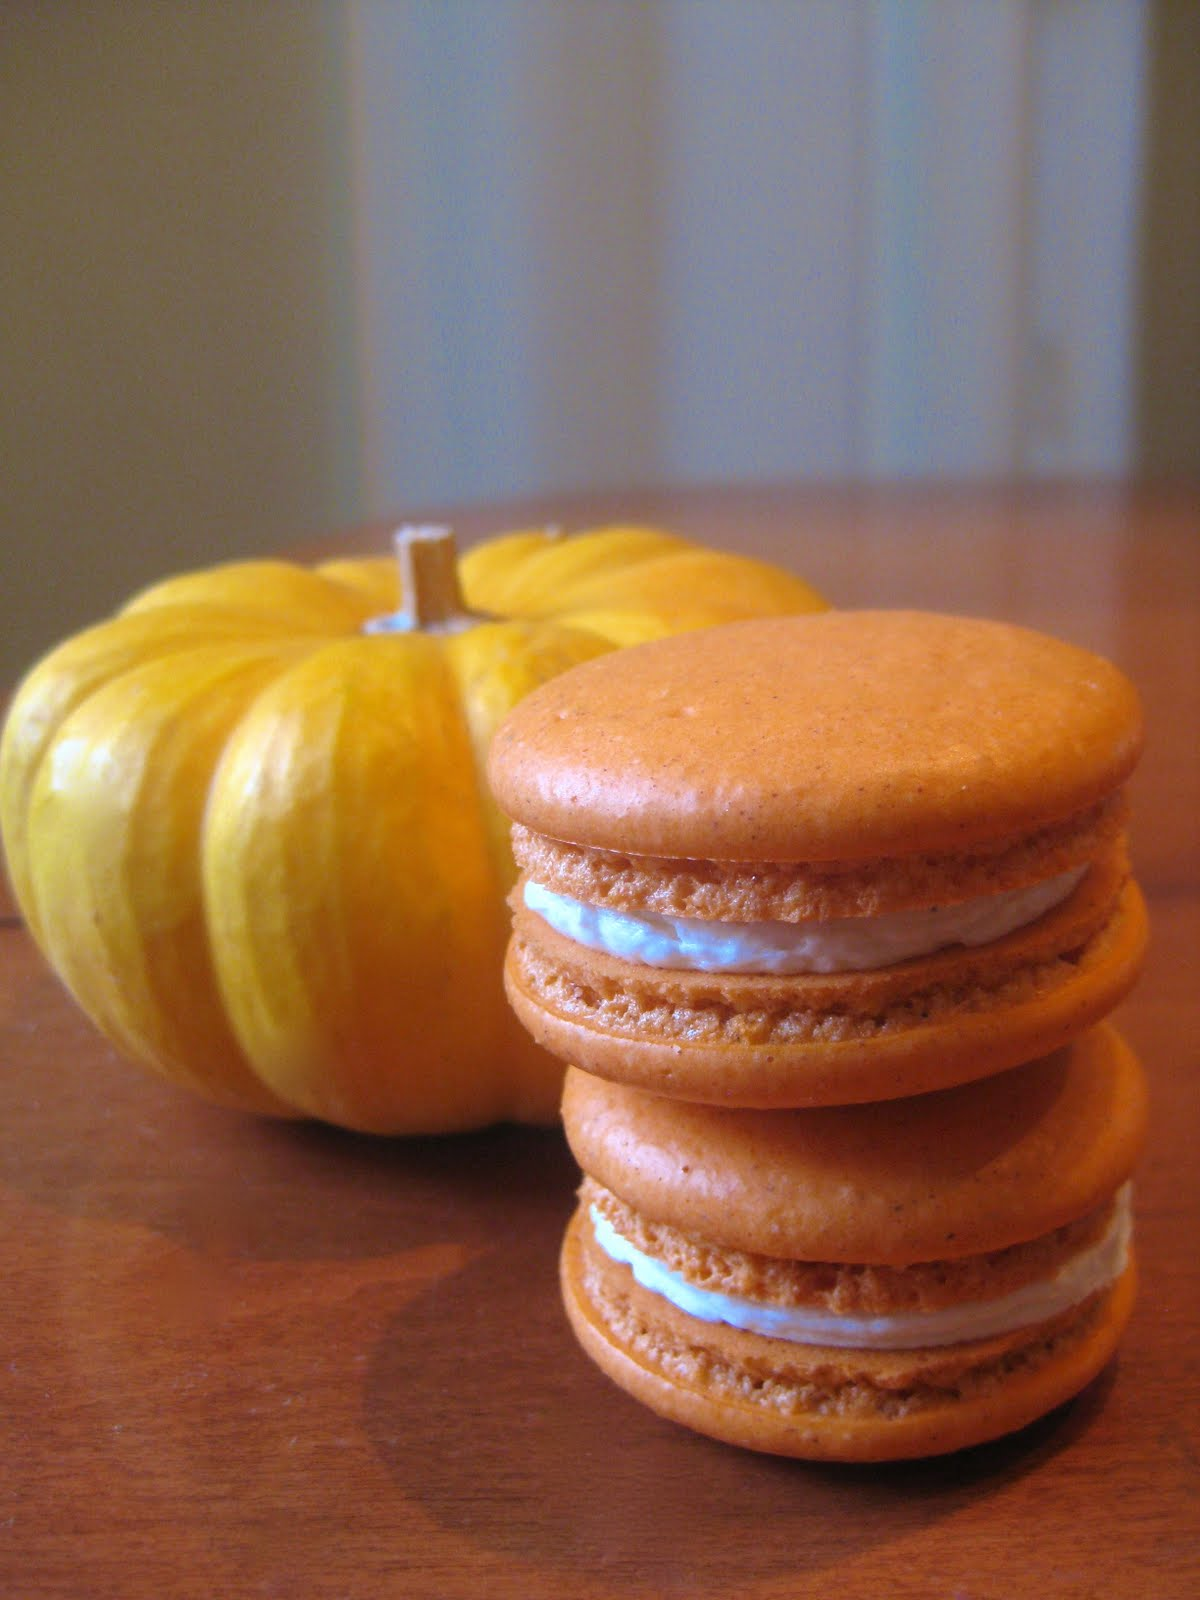 UPDATE 11/01/2013: Check out the pumpkin spice French macarons on my ...